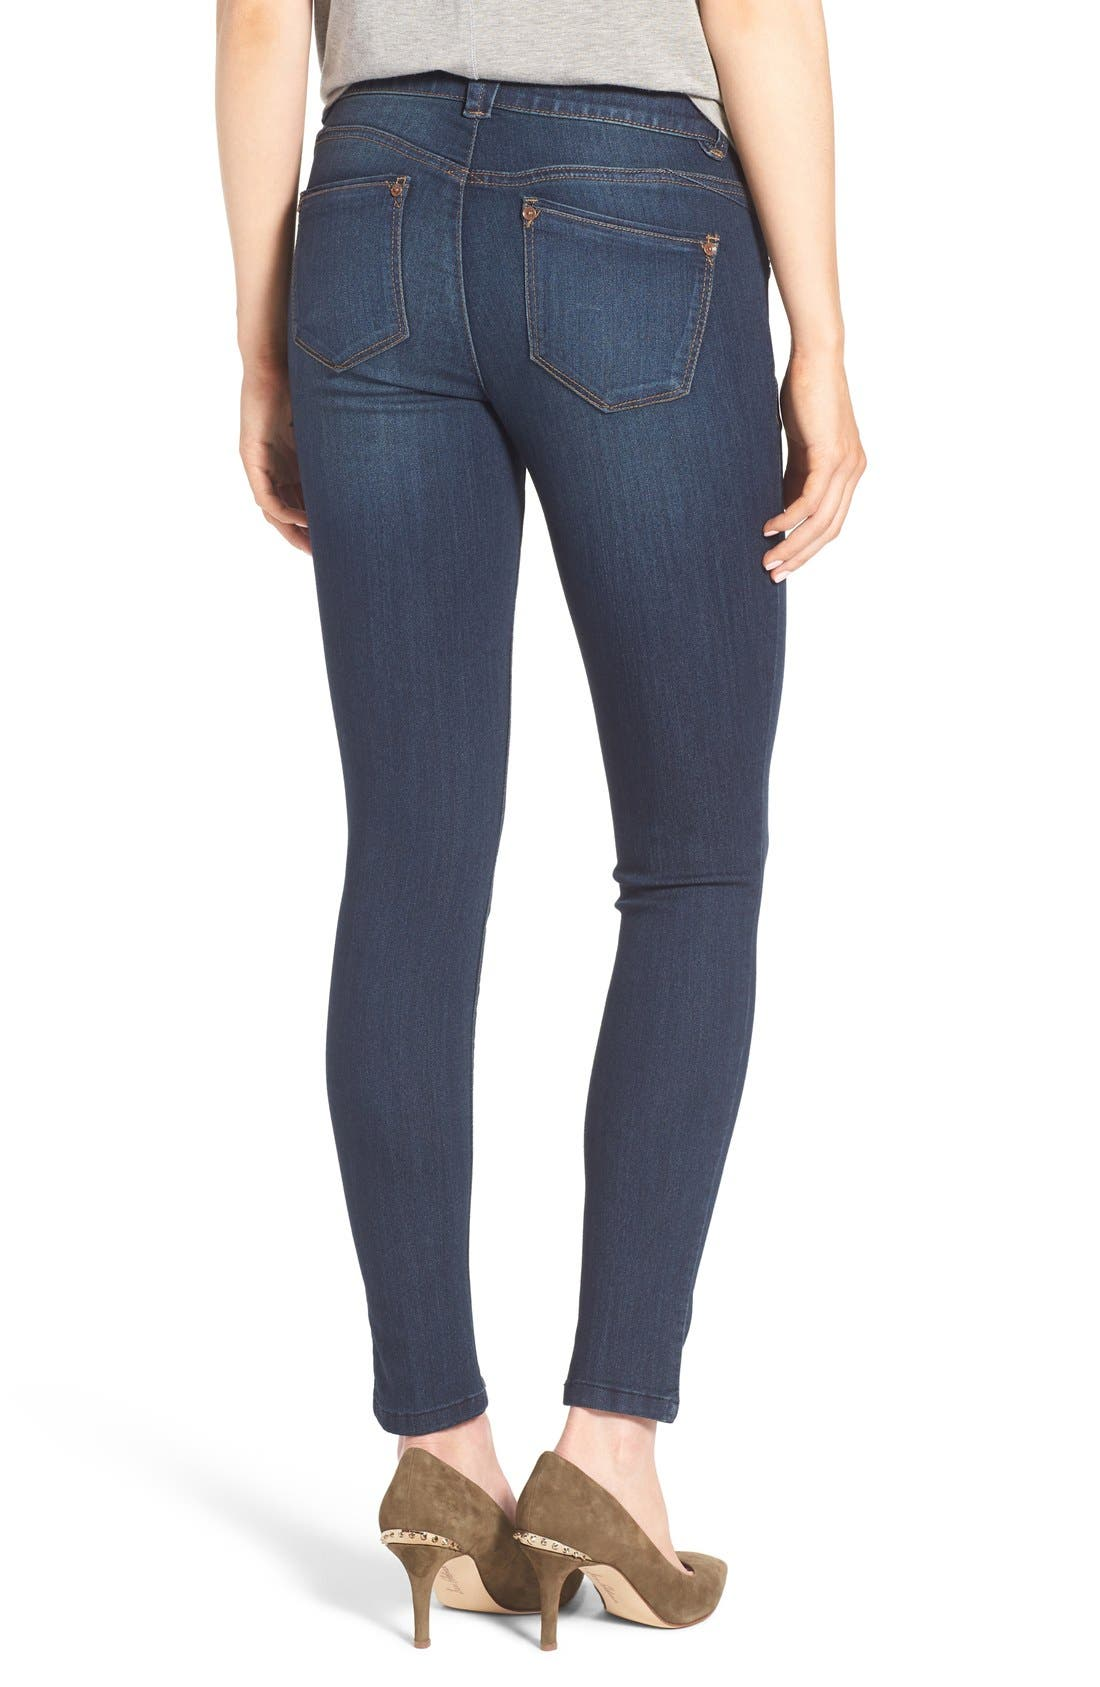 Alternate Image 2  - Wit & Wisdom 'Ab-solution' Stretch Skinny Jeans (Nordstrom Exclusive)